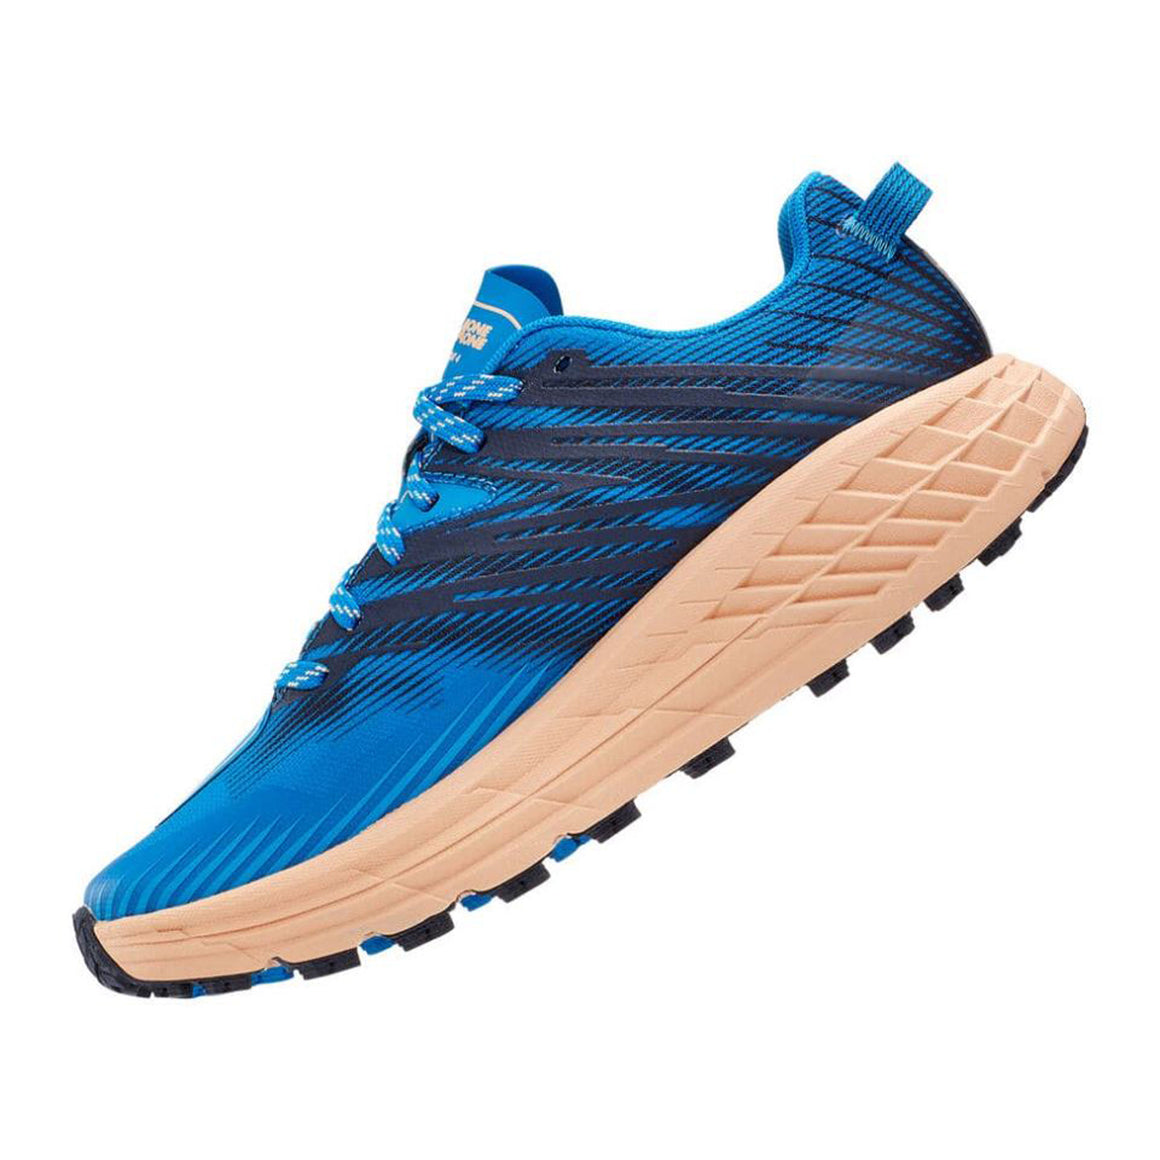 Speed Goat Running Shoes for Women in Indigo & Apricot